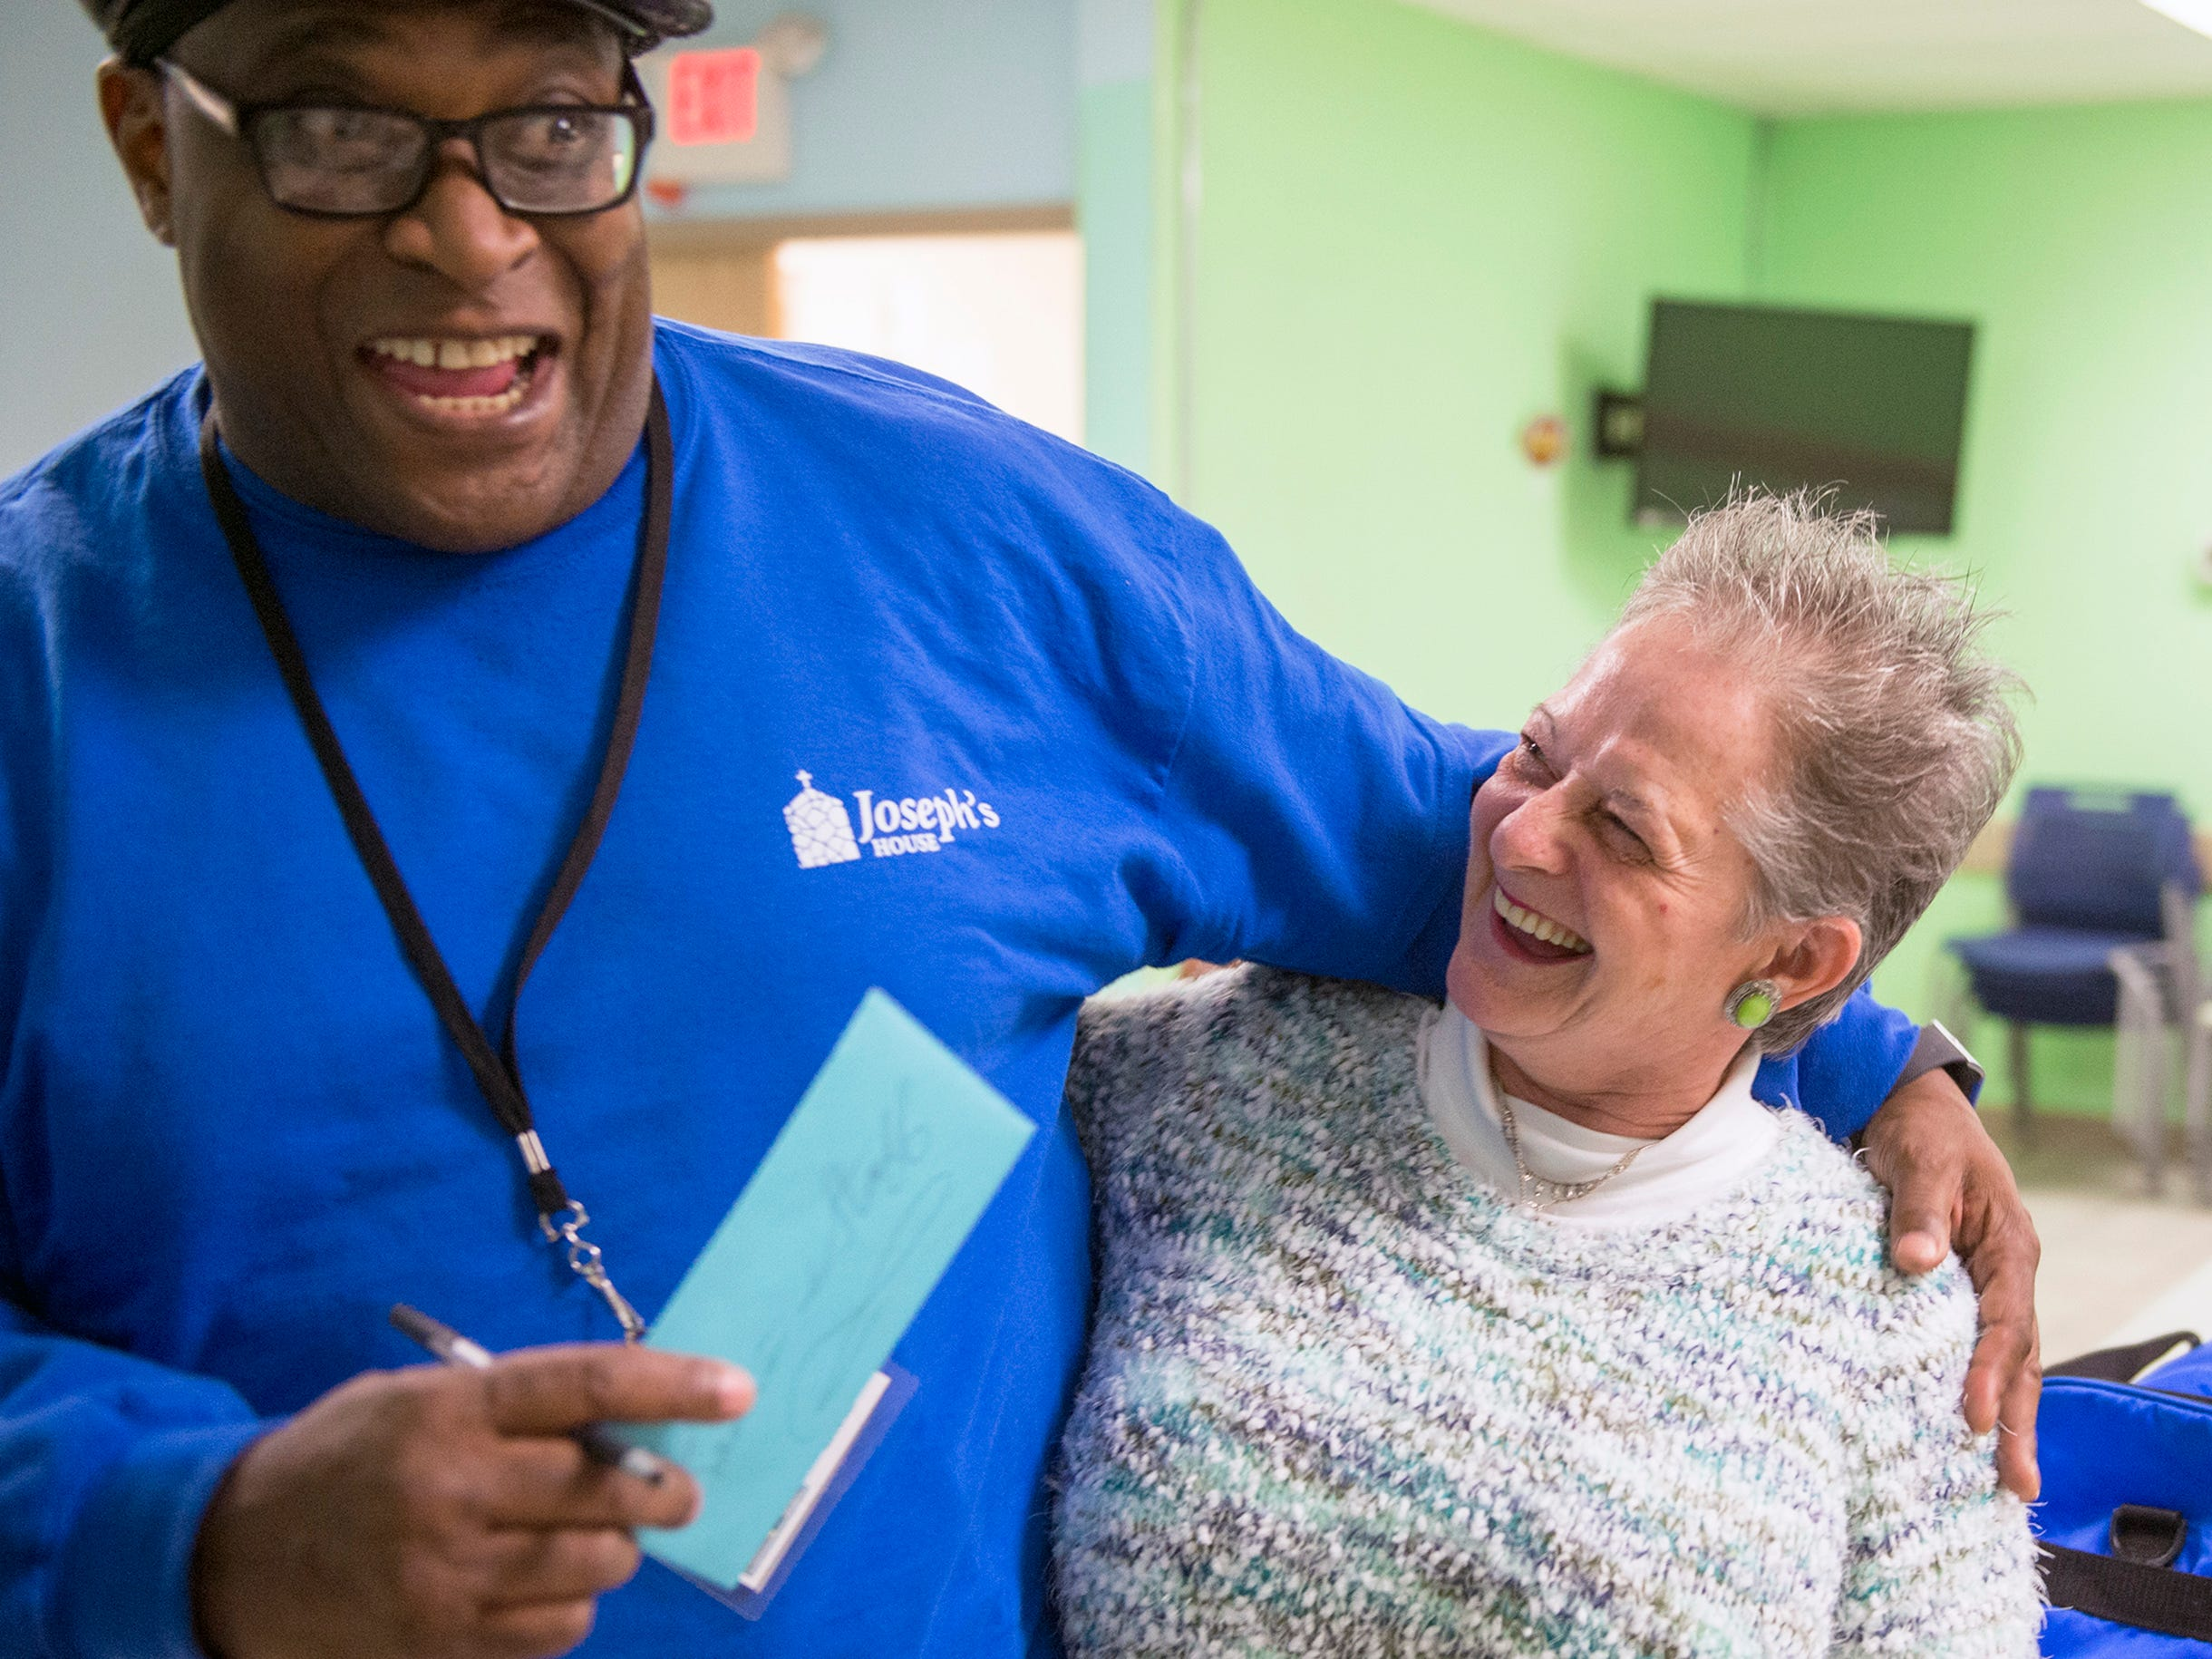 Intake Supervisor Ernest 'Radio' Lindsay, left, is embraced by former guest Diana Stanford, 62, of Gloucester County Tuesday, Nov. 13, 2018 at Joseph's House in Camden, N.J. Stanford, who was homeless, was discharged today and brought a thank-you card to show her appreciation for Mr. Lindsay and Joseph's House. Lindsay, who was homeless prior to joining the staff at Joseph's House, has been working there for eight years. Stanford found residence in Camden.